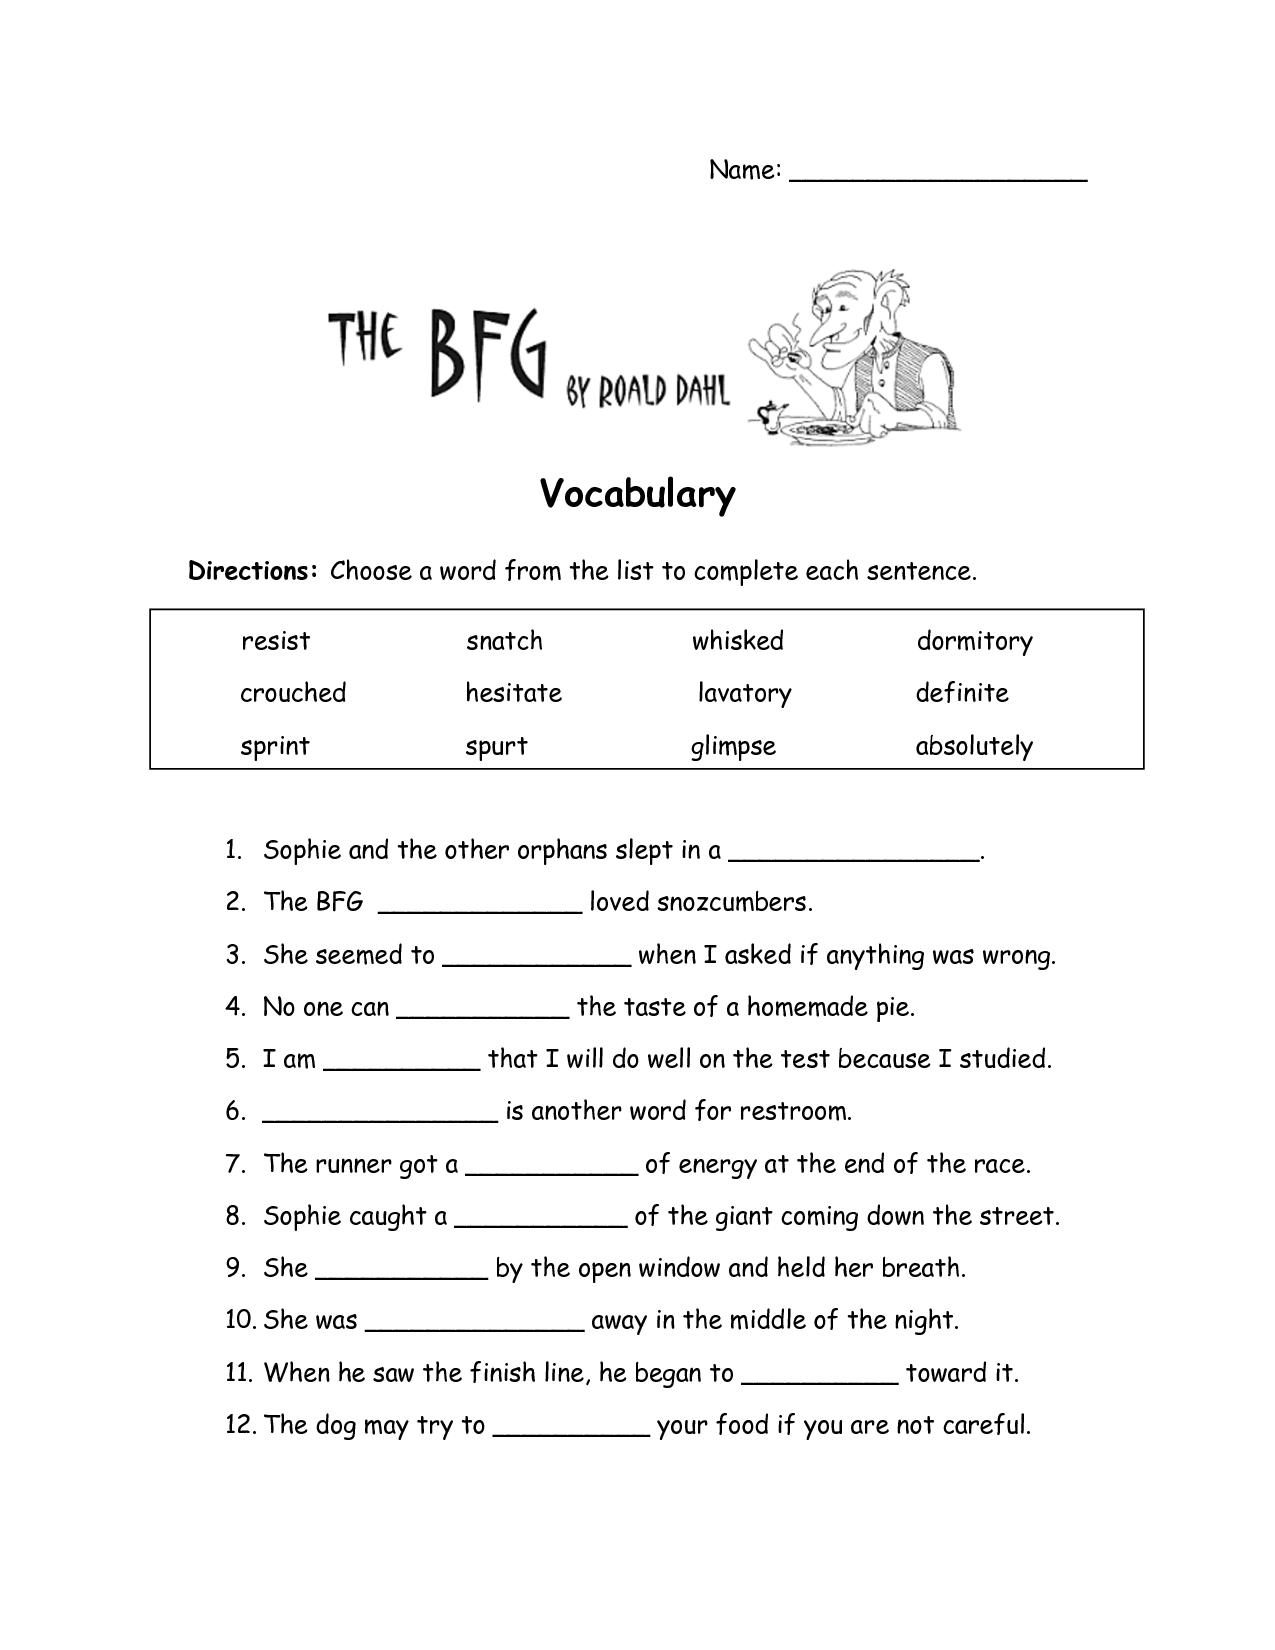 the bfg worksheets the bfg vocabulary worksheet education items pinterest worksheets. Black Bedroom Furniture Sets. Home Design Ideas